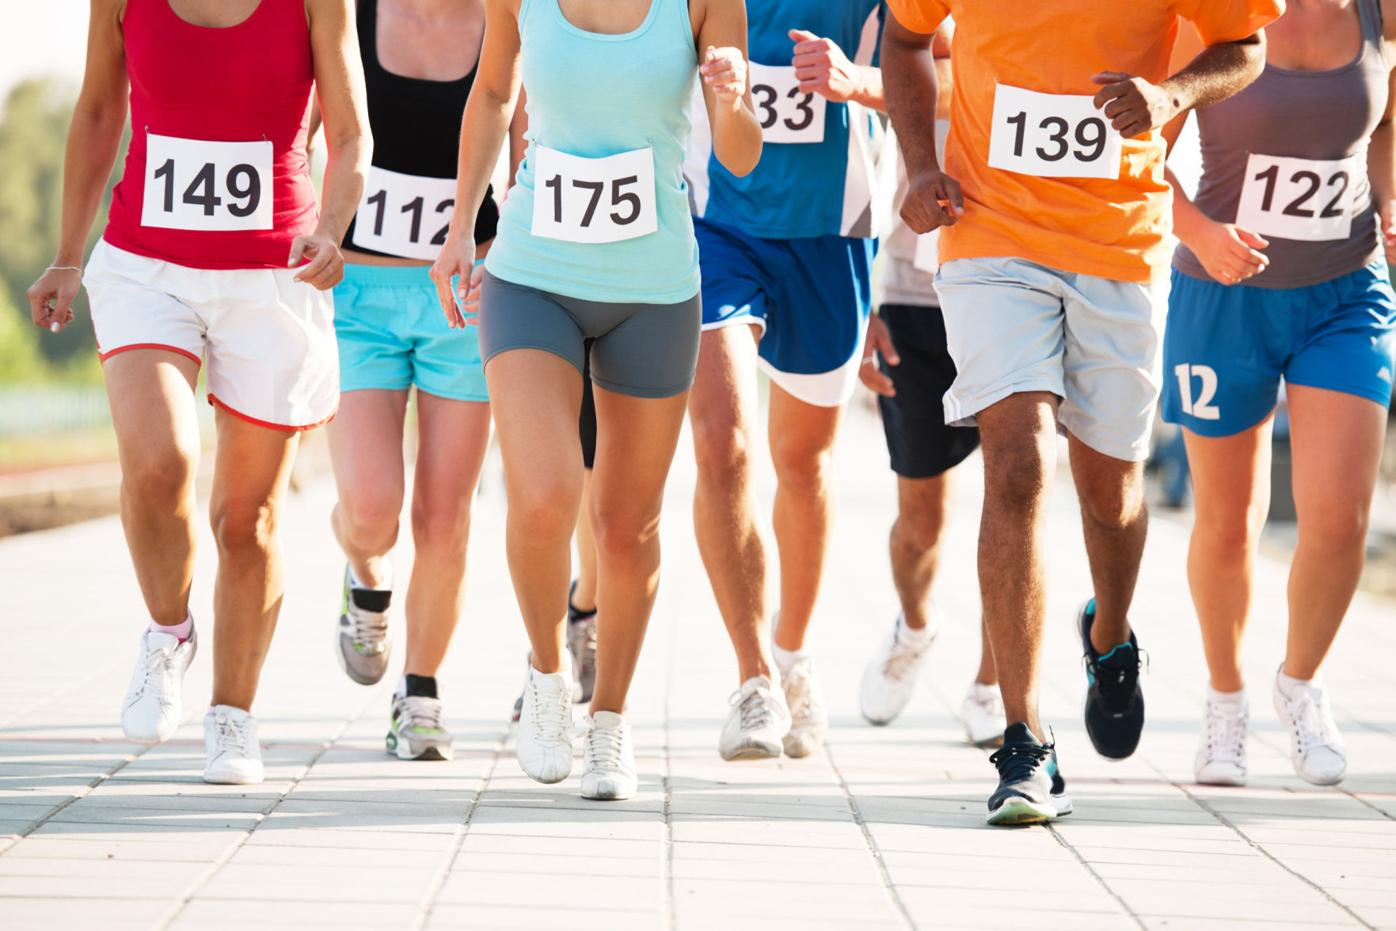 Run for a cause this season with 5Ks, races and more